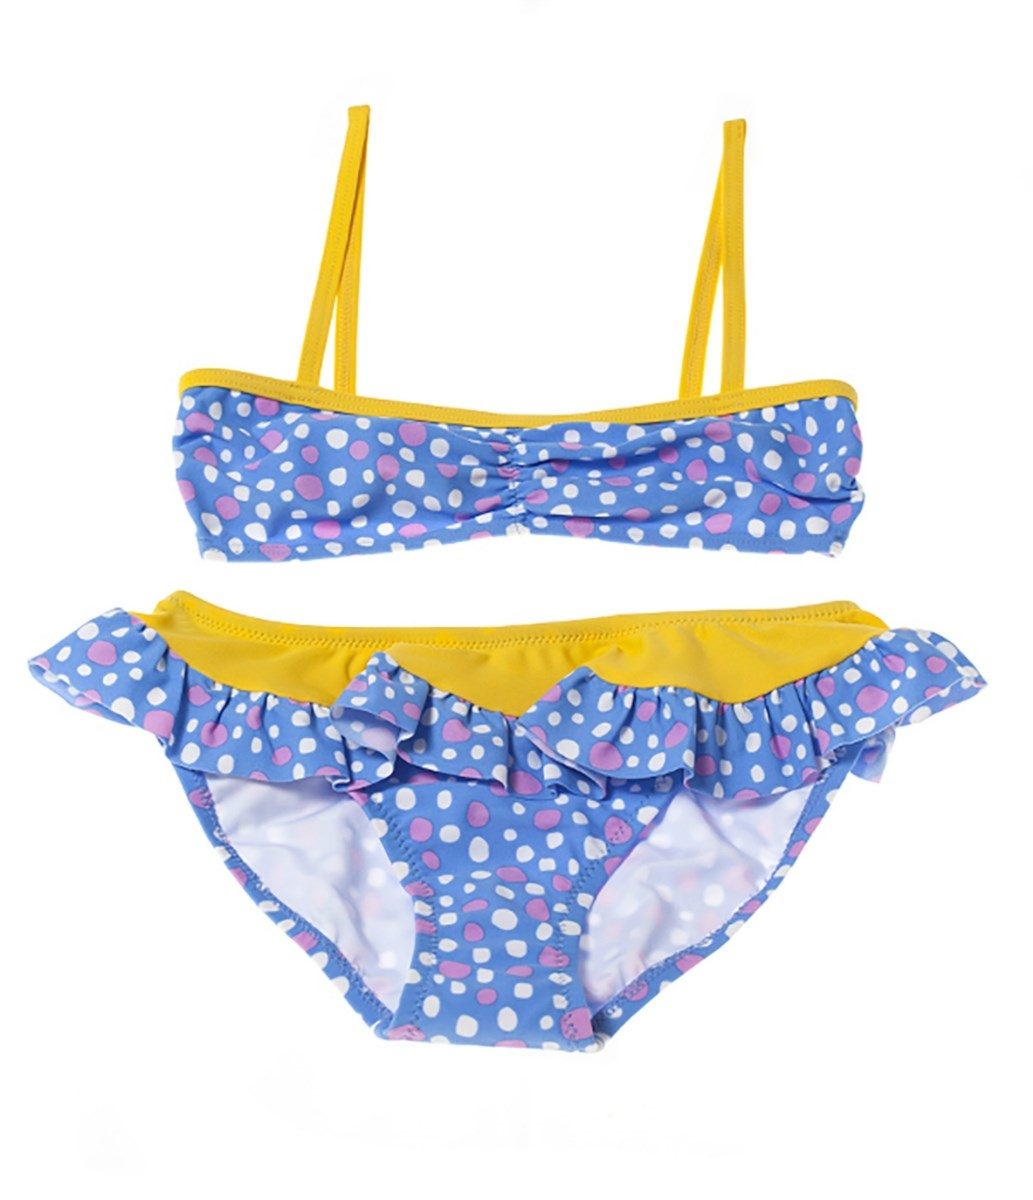 Rockley Cove UPF50+ Modern Dot Skirt Bikini